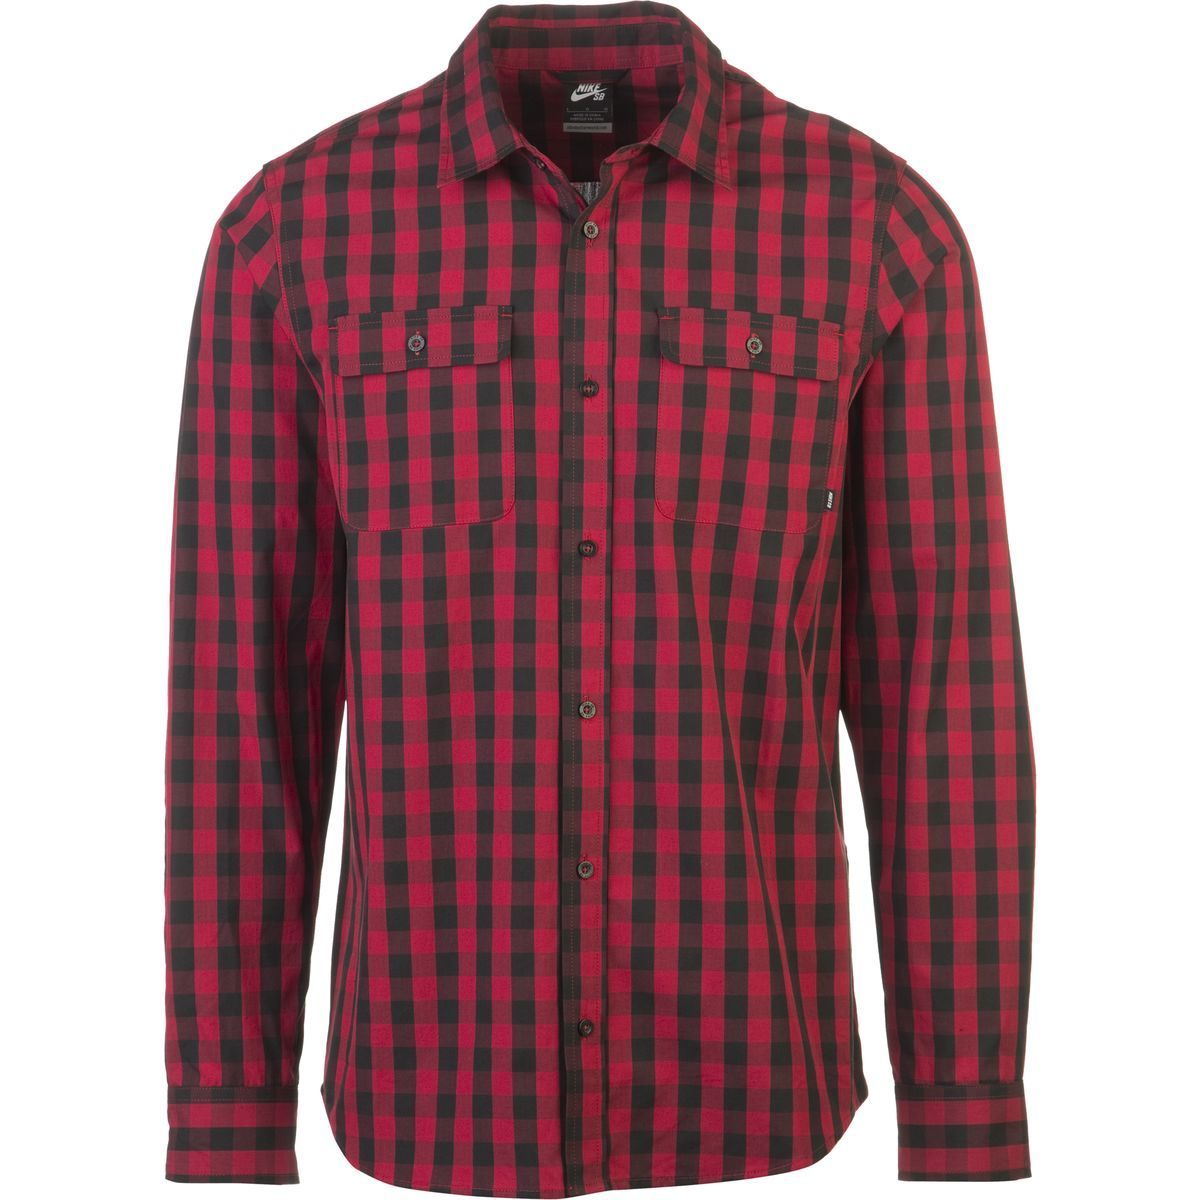 fantastic savings newest collection great deals 2017 Nike - SB Buffalo Check Shirt - Long-Sleeve - Men's - Black ...